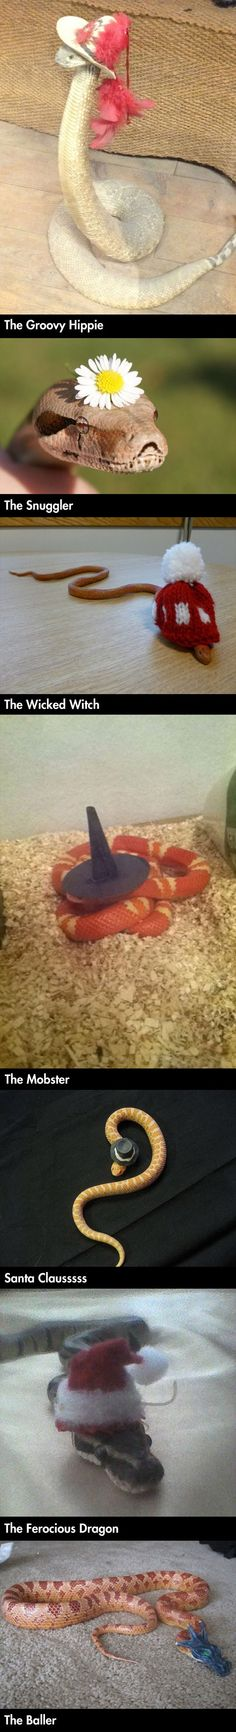 Some more adorable snakes in hats to brighten your day!!!